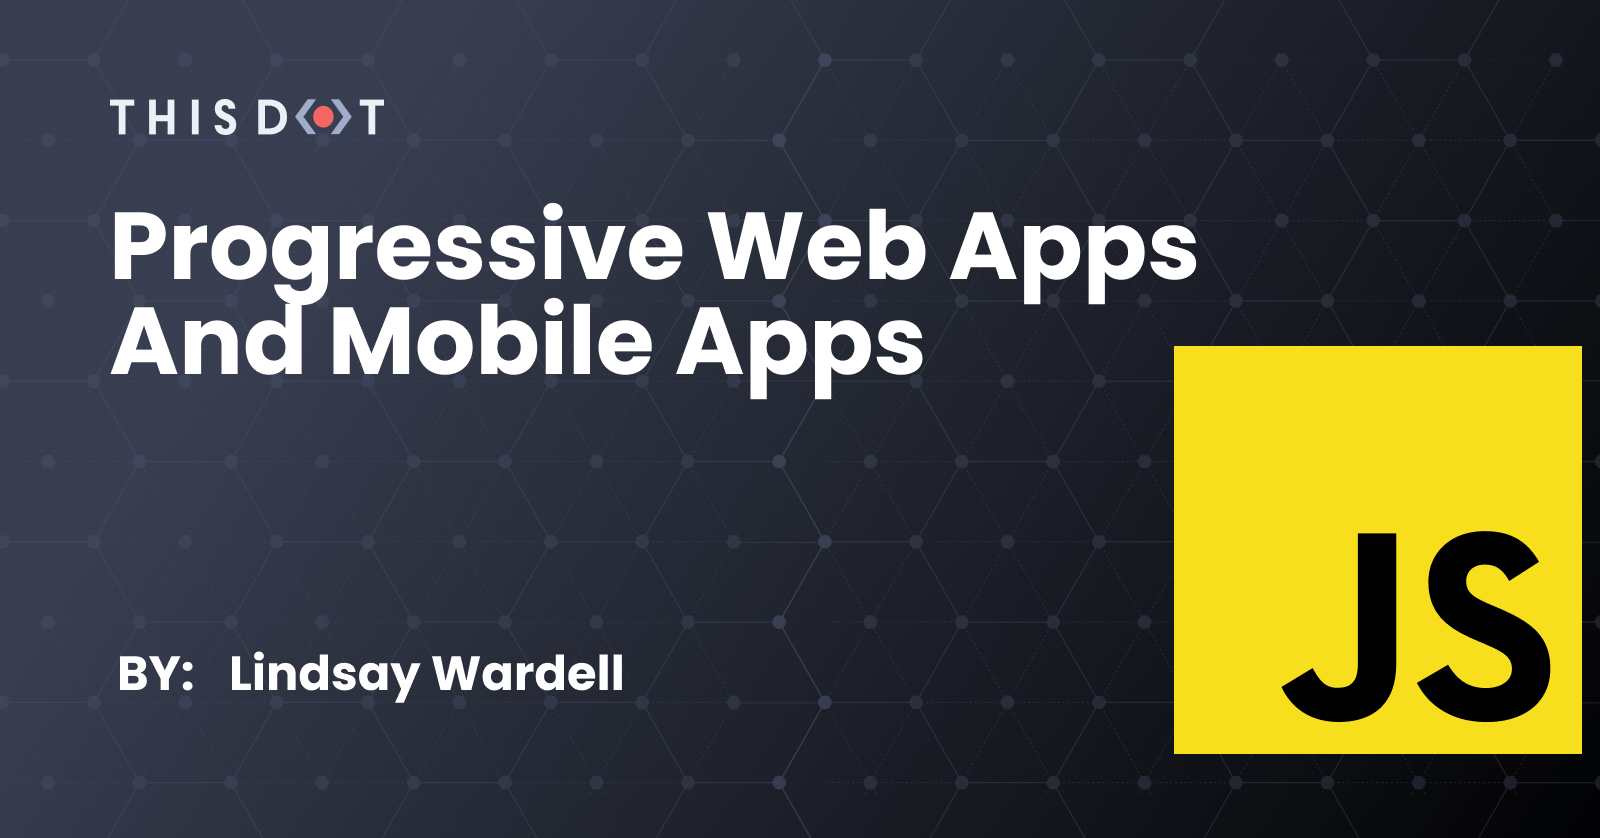 Progressive Web Apps and Mobile Apps